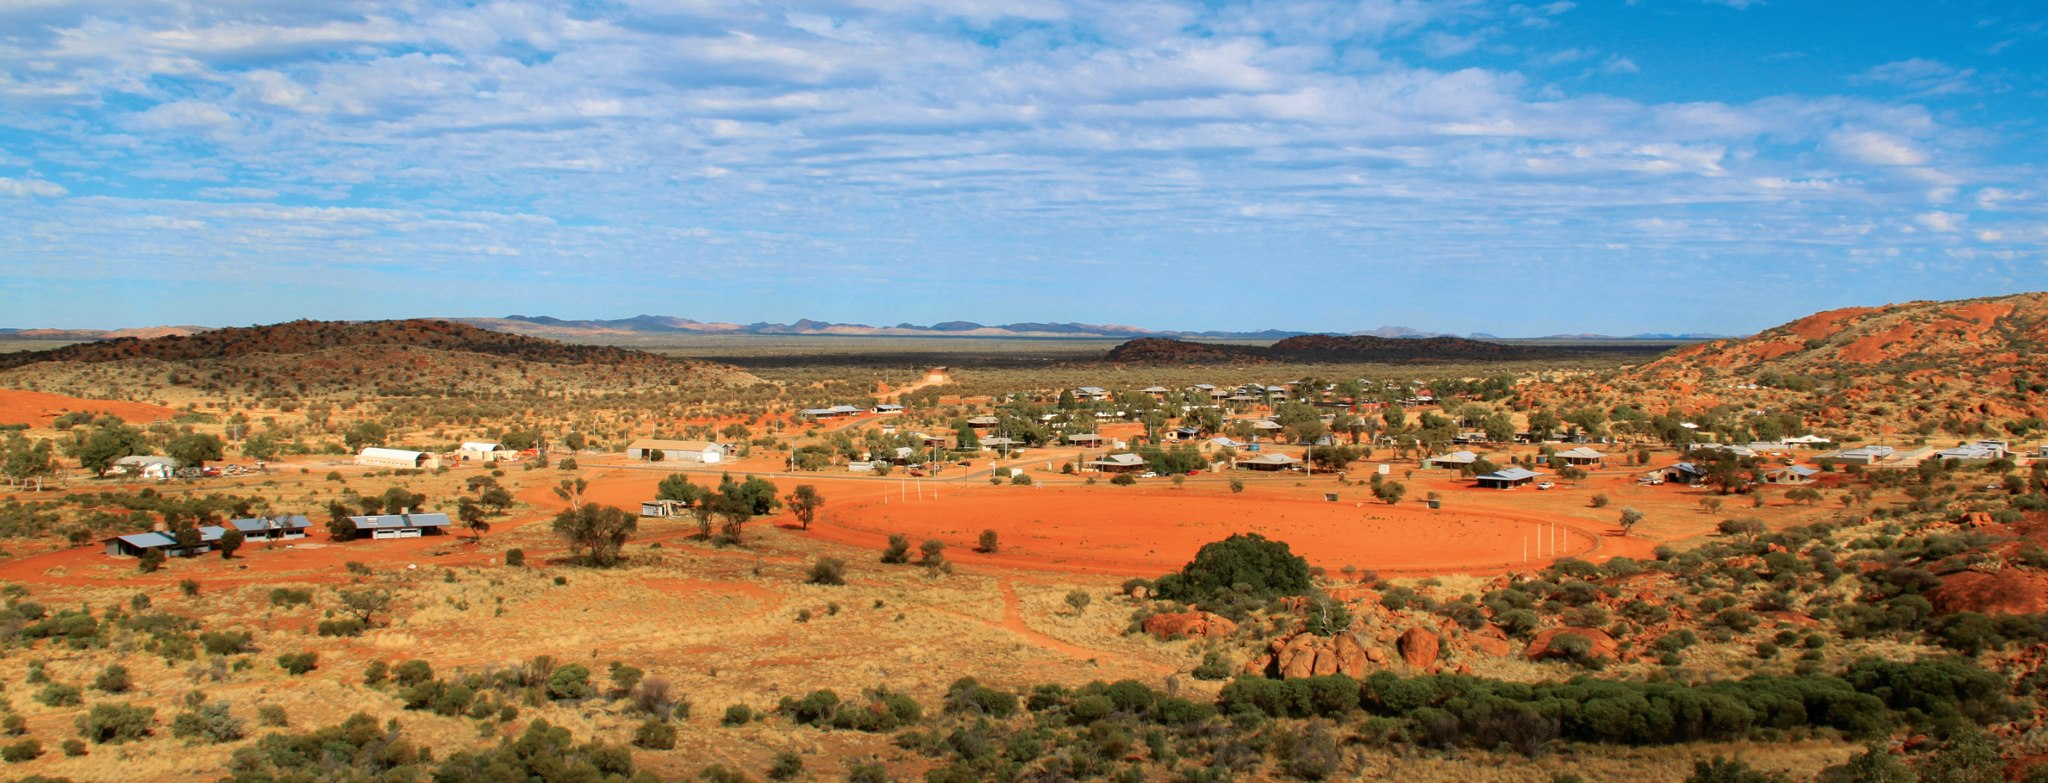 Aerial photo of the Mimili landscape